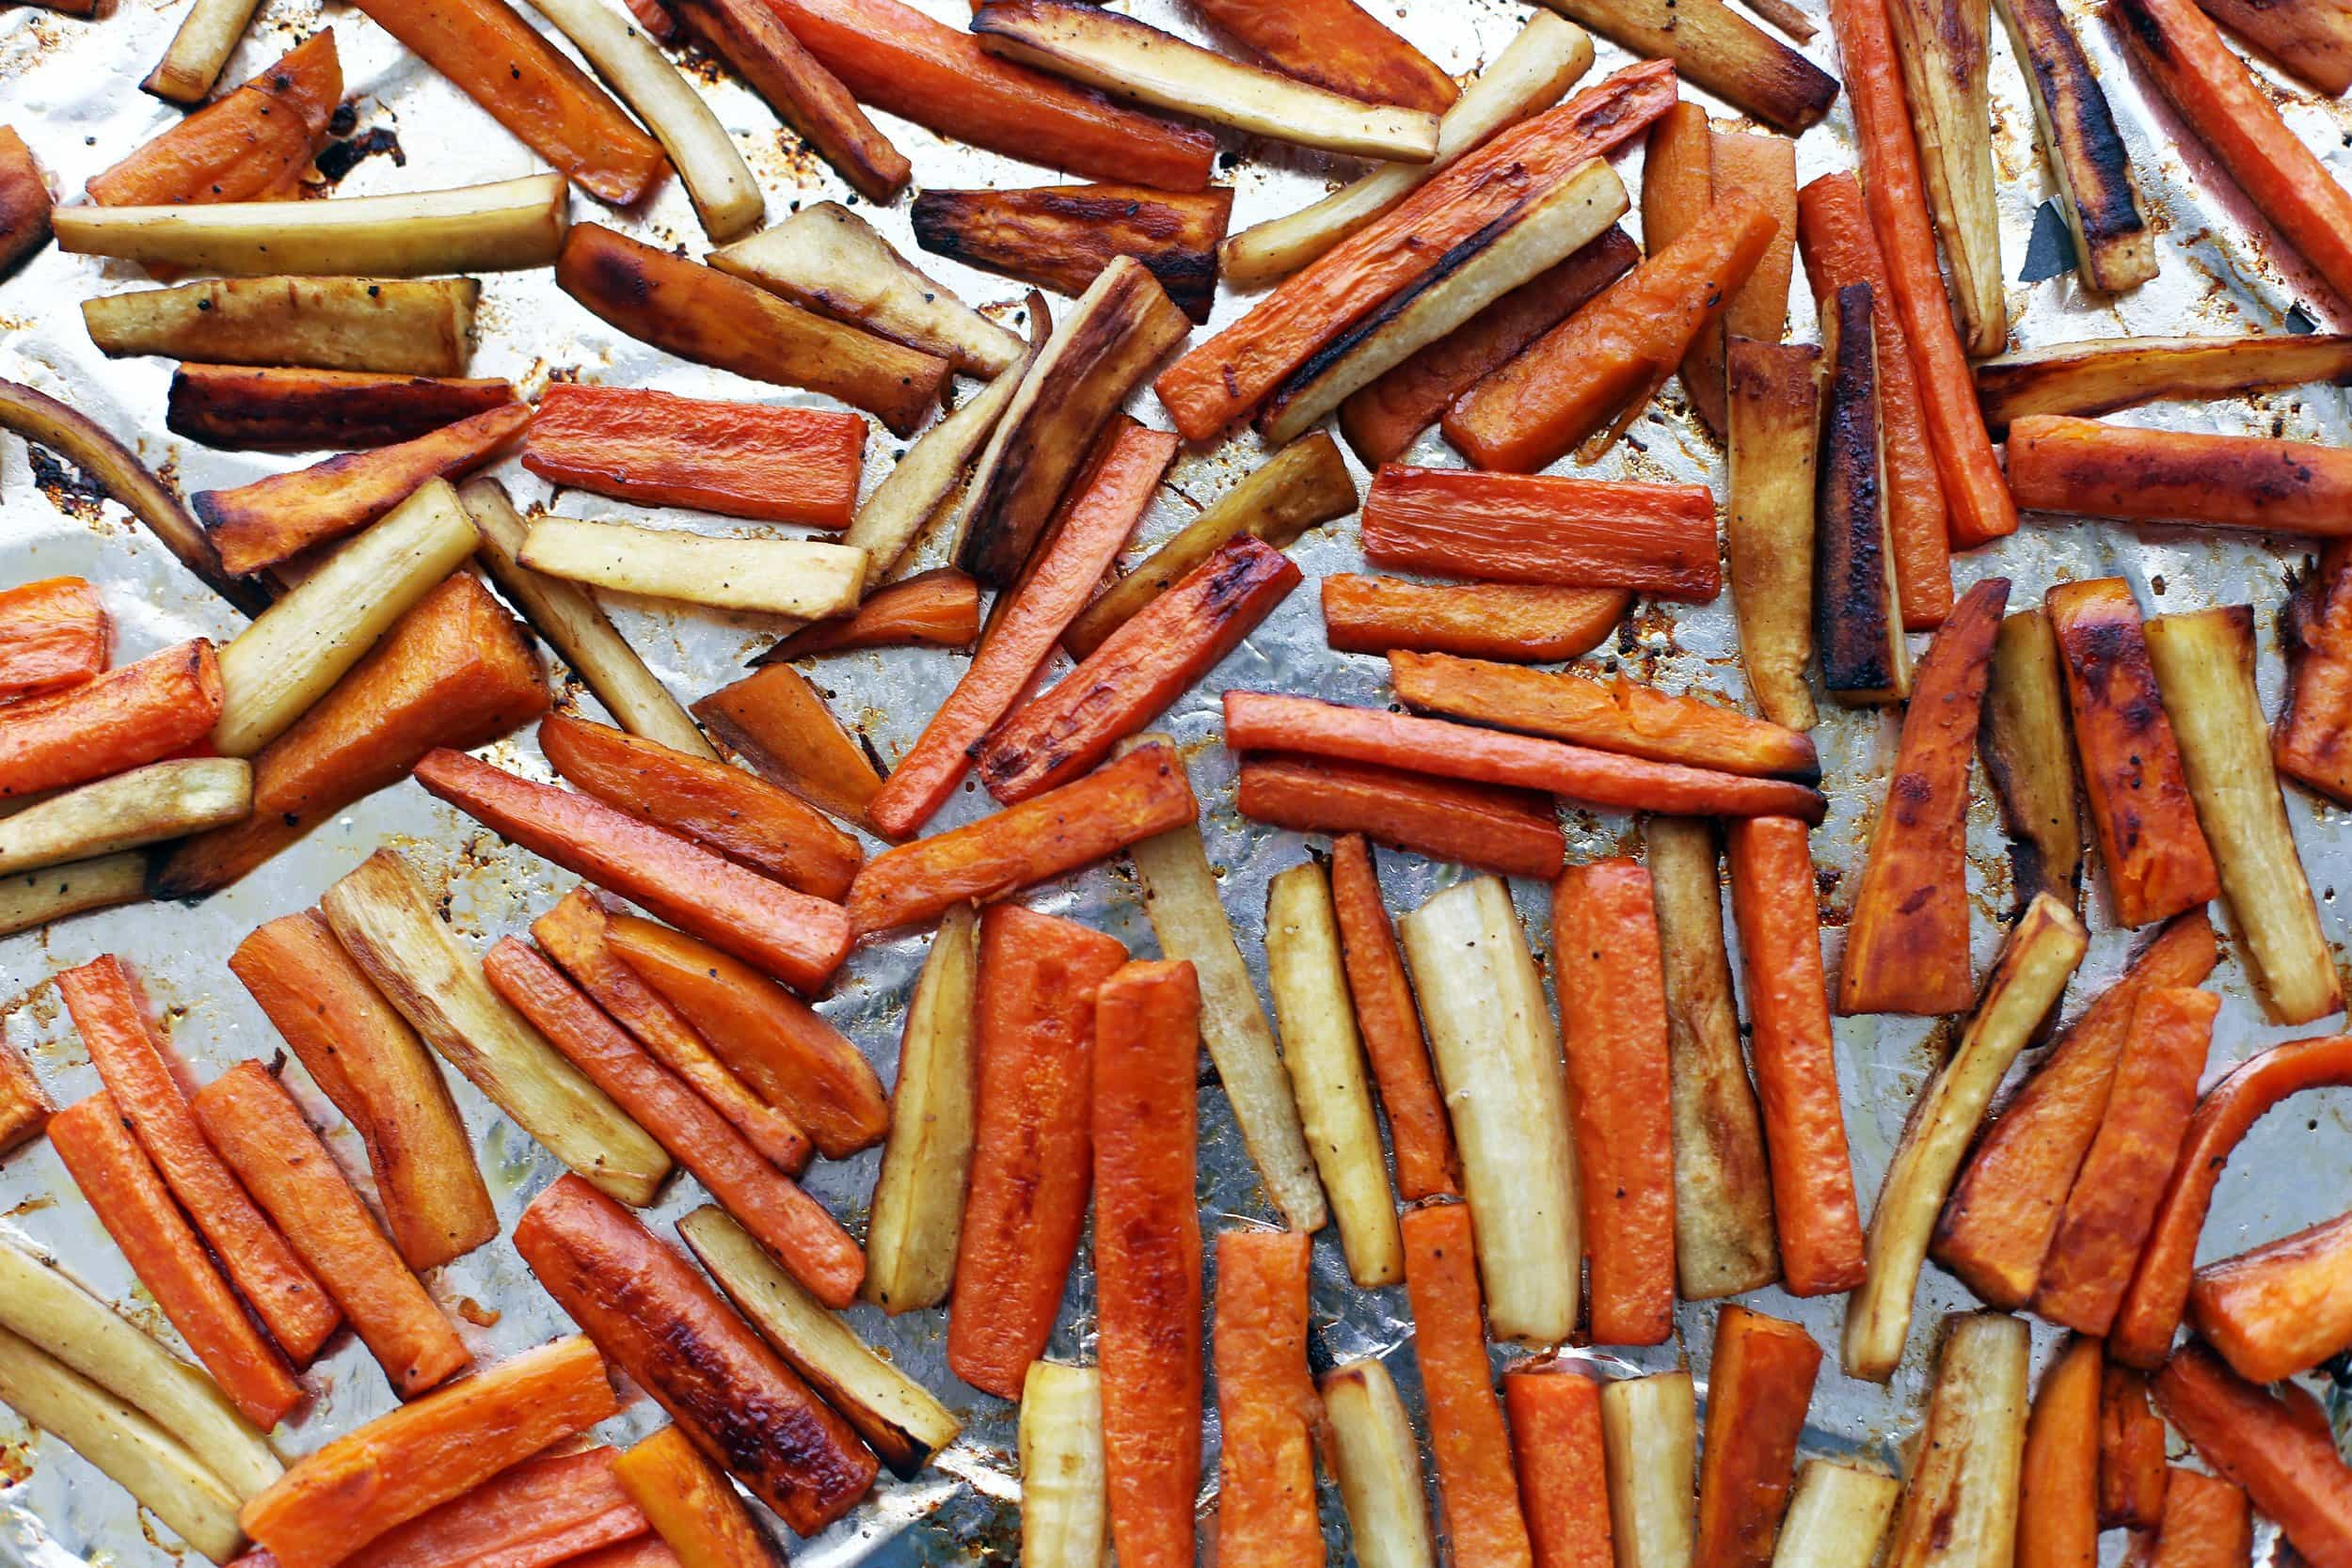 Roasted carrots, parsnips, and sweet potatoes in a single layer on an aluminum foiled lined baking sheet.